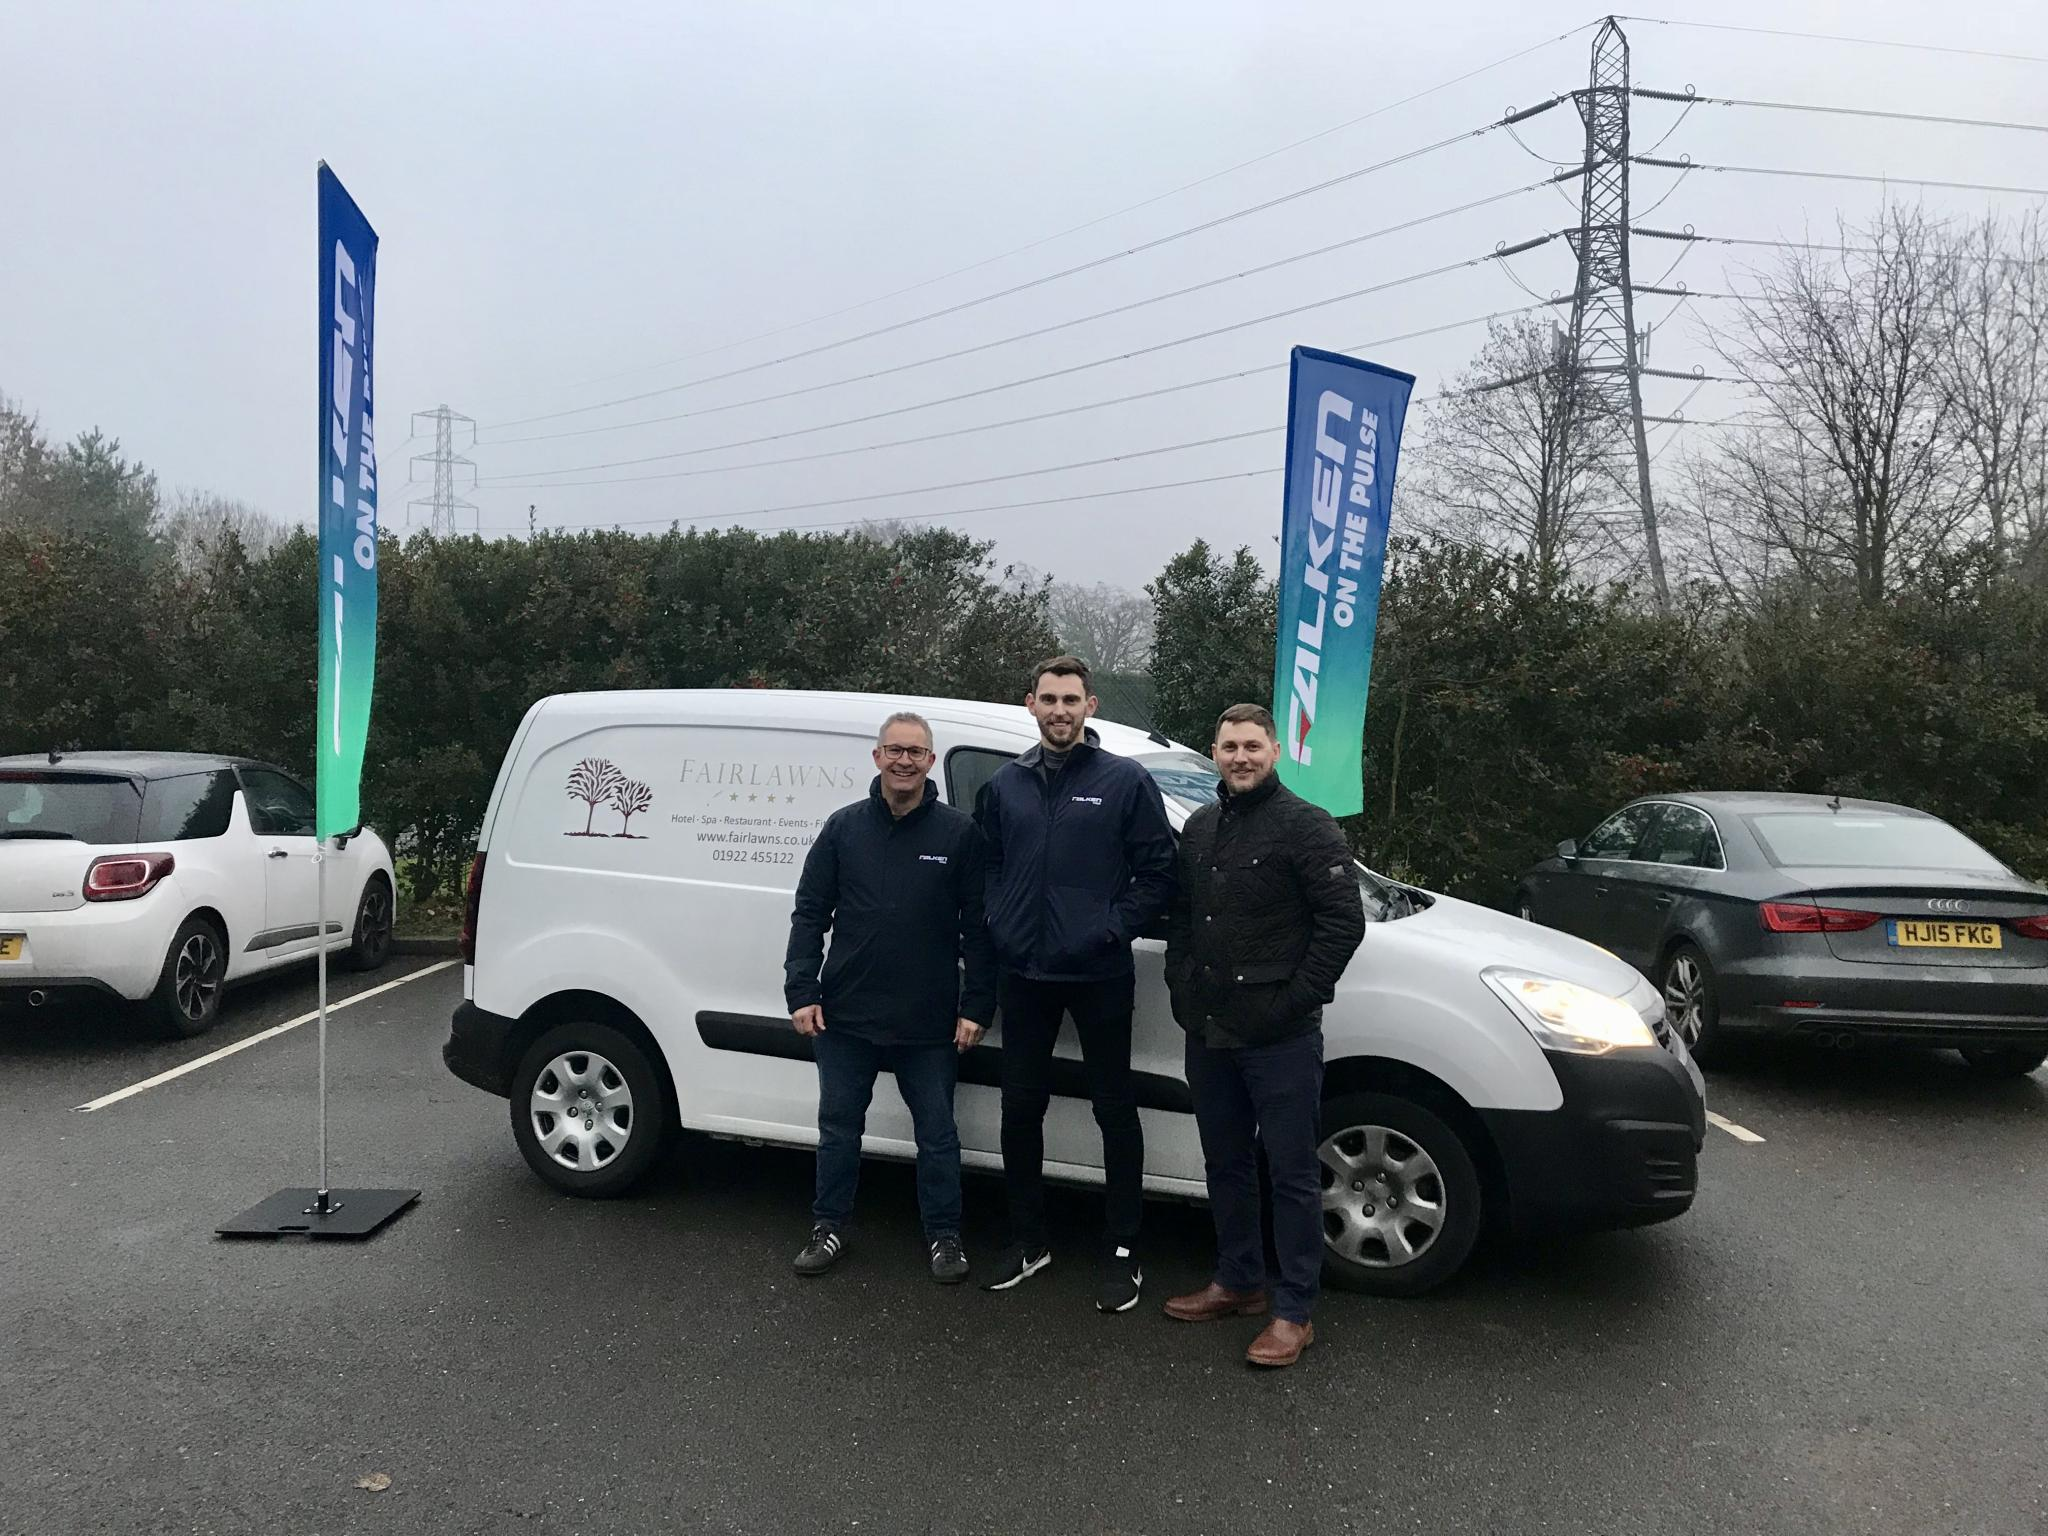 Walsall Wood Tyre & Service Walsall